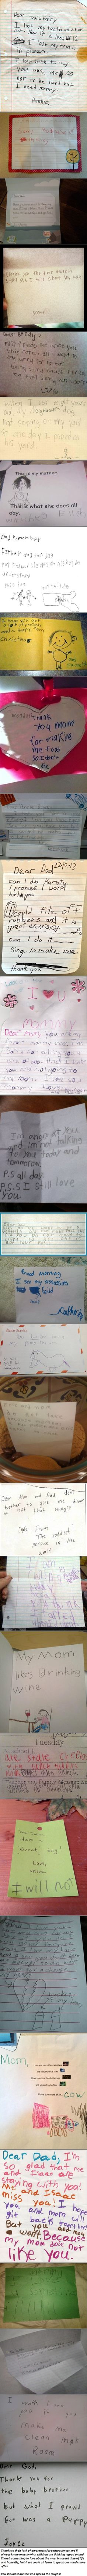 Children Are So Brutally Honest With Their Opinions, Especially These 30 Kids... -  Mean letters from children